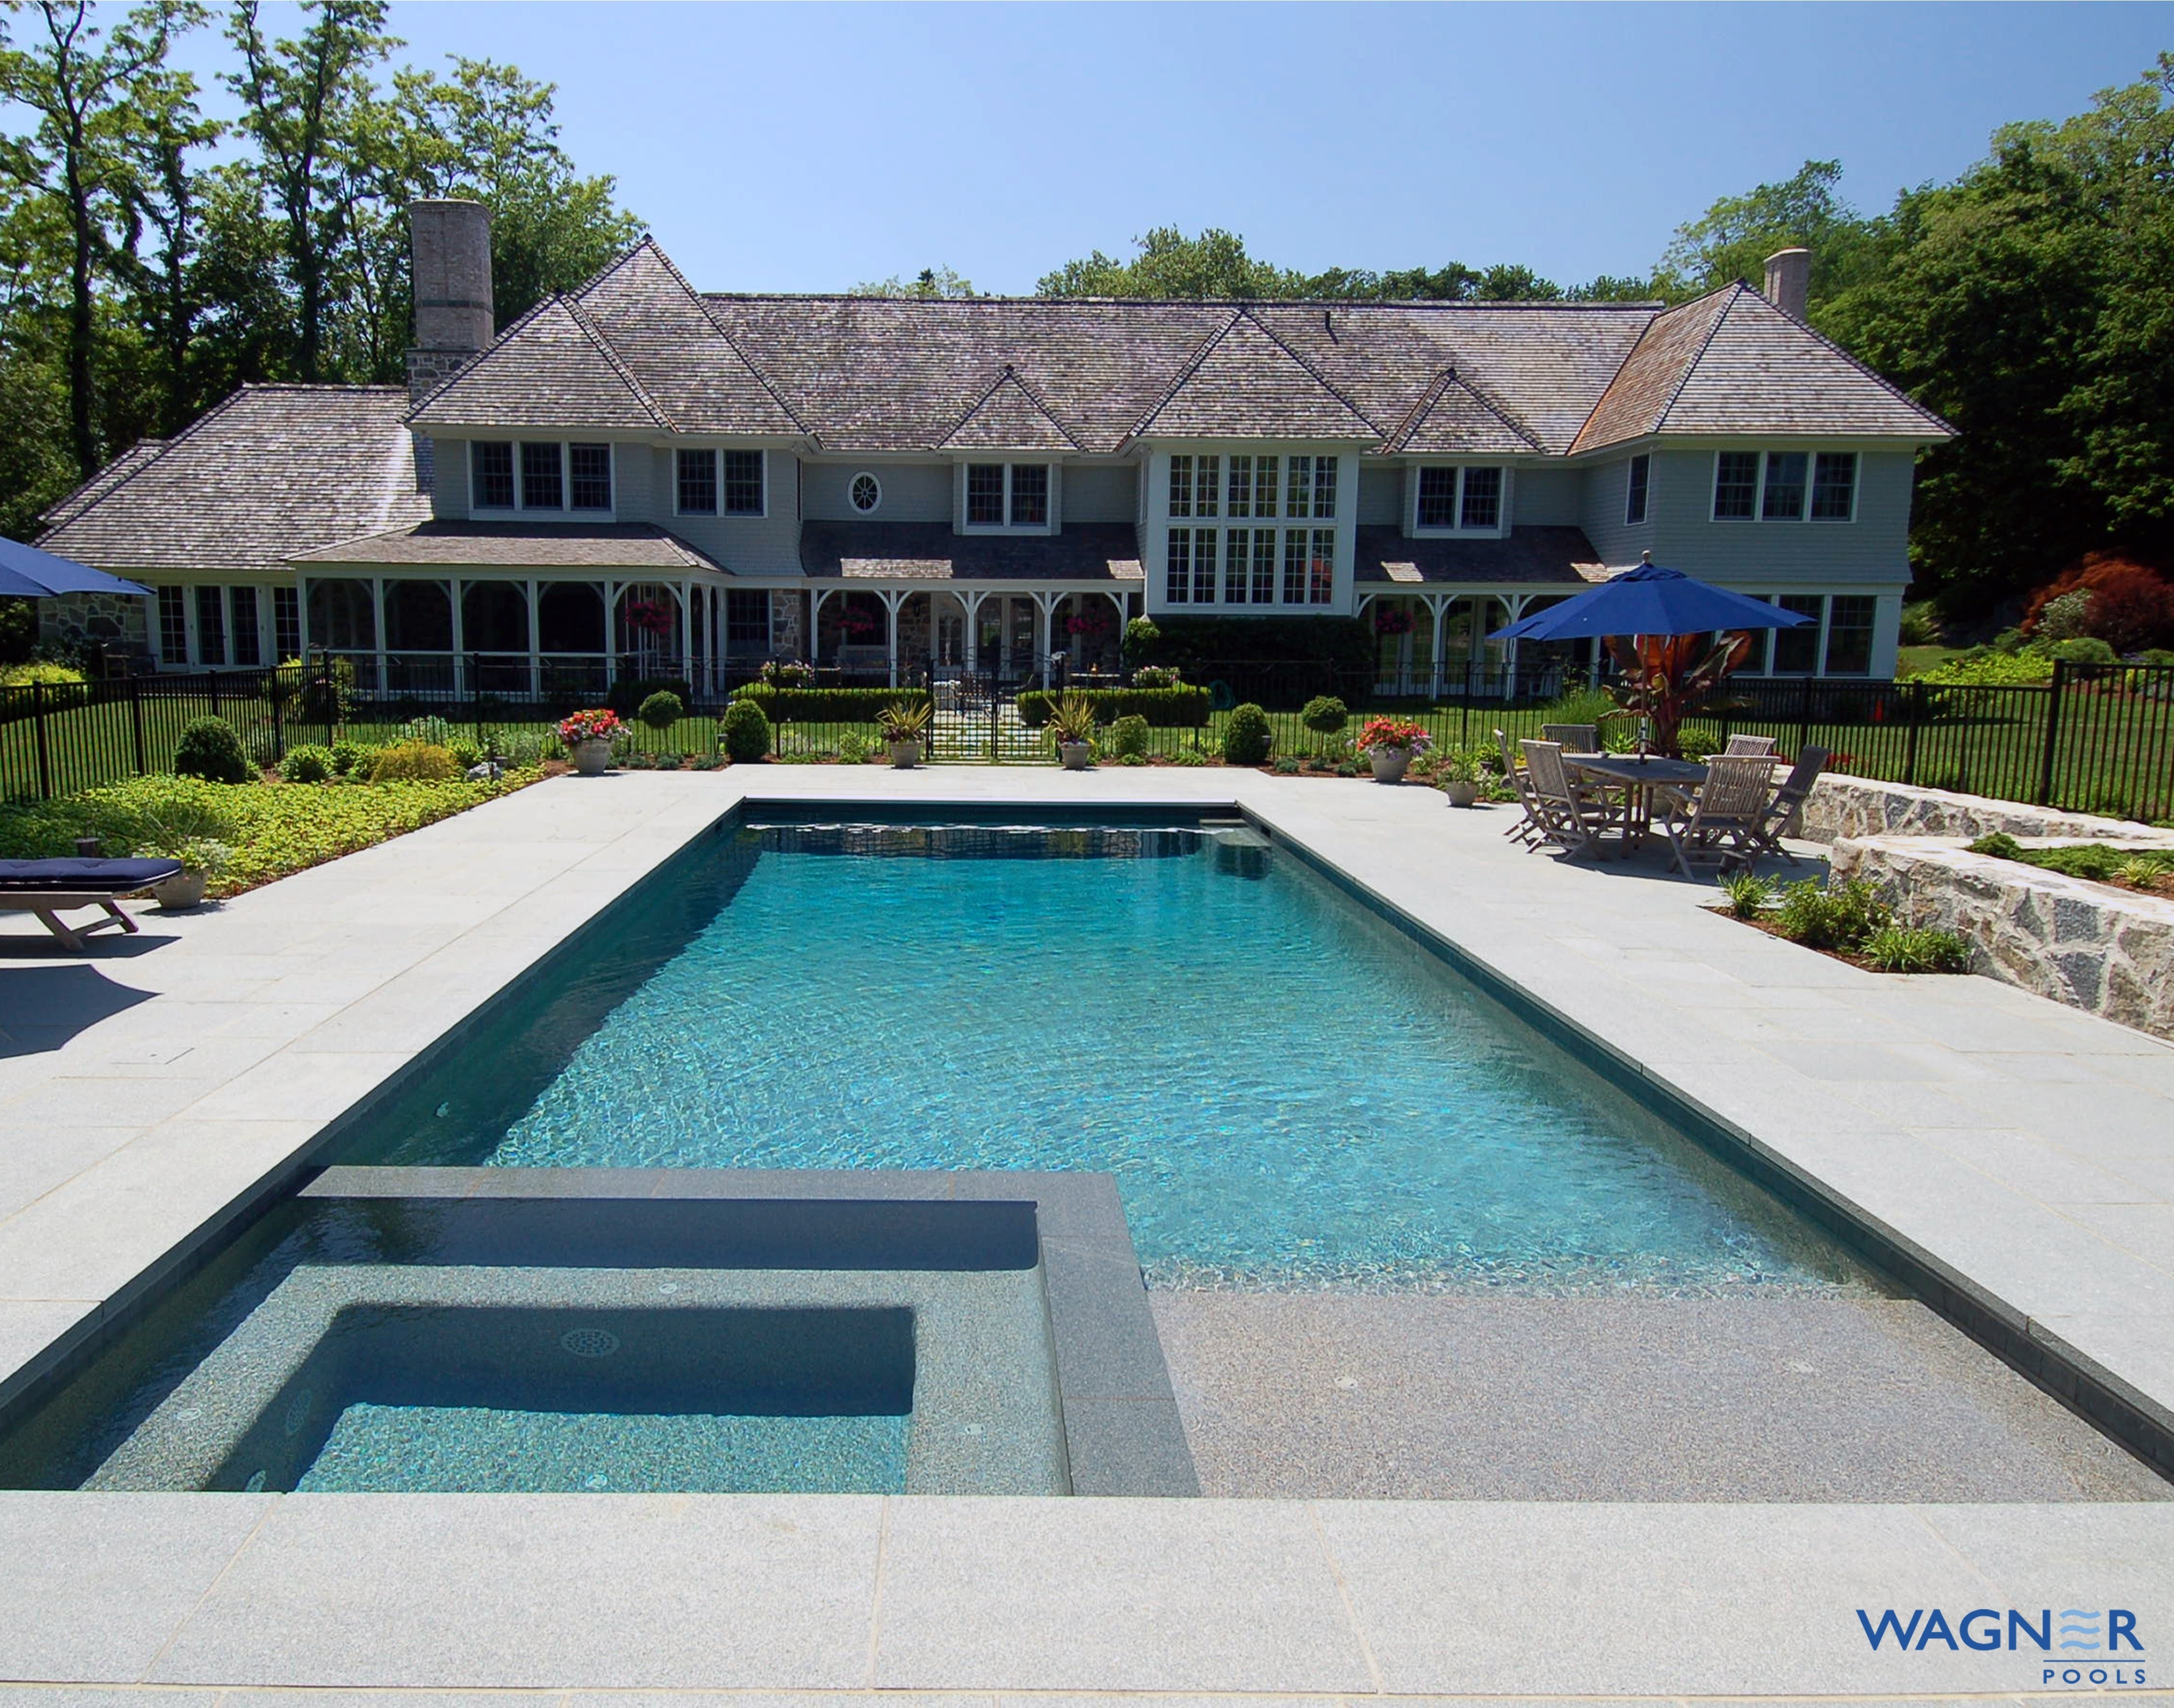 Wagner pools darien ct swimming pool contractors for Pool vendors